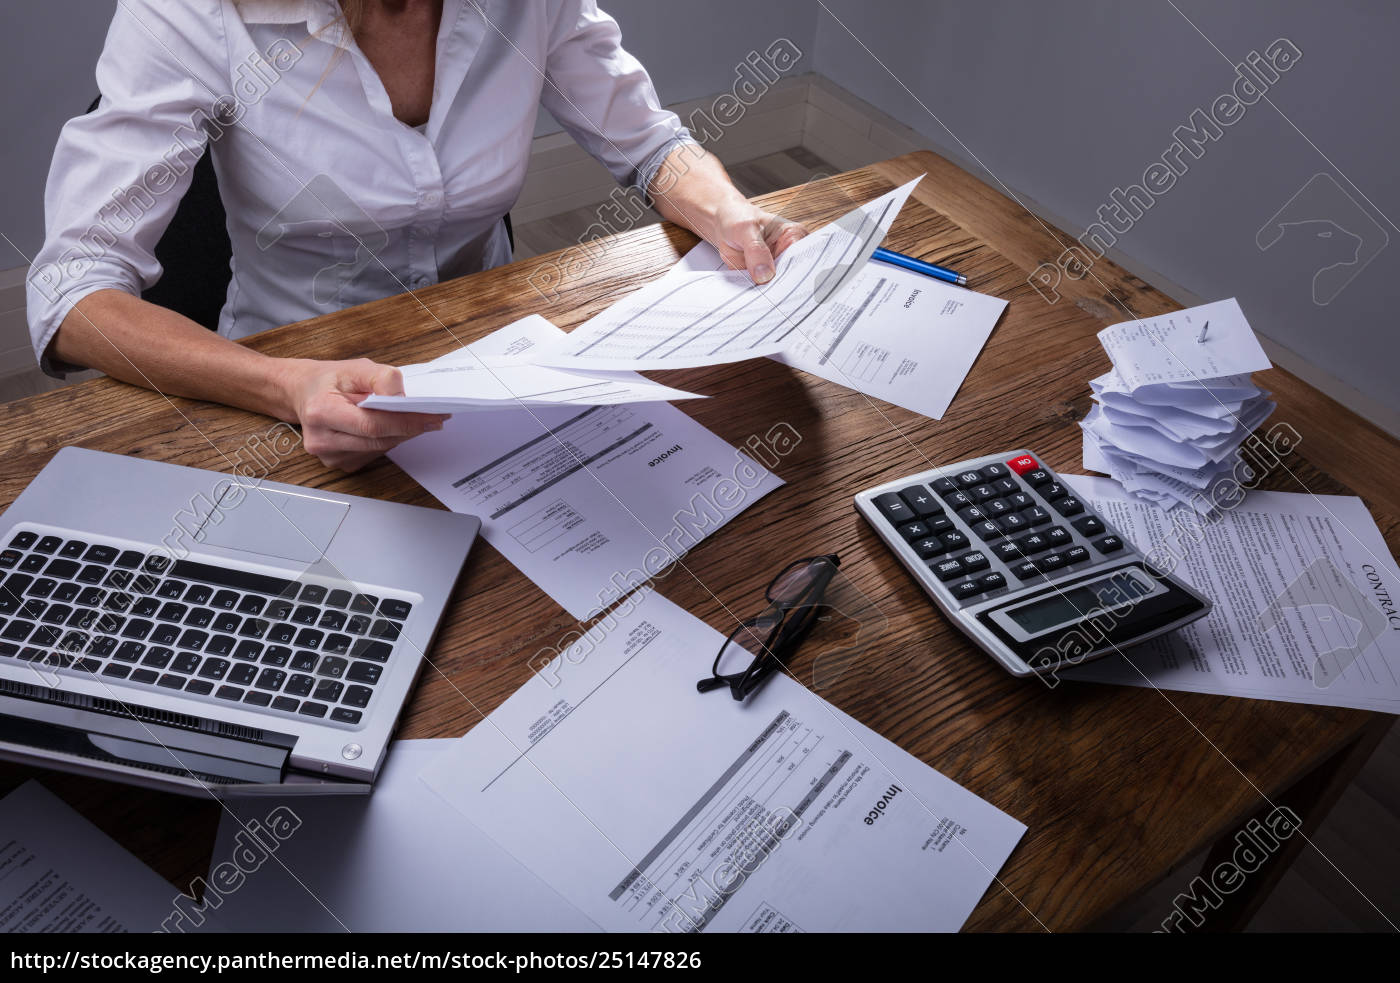 businessperson's, hand, holding, documents - 25147826